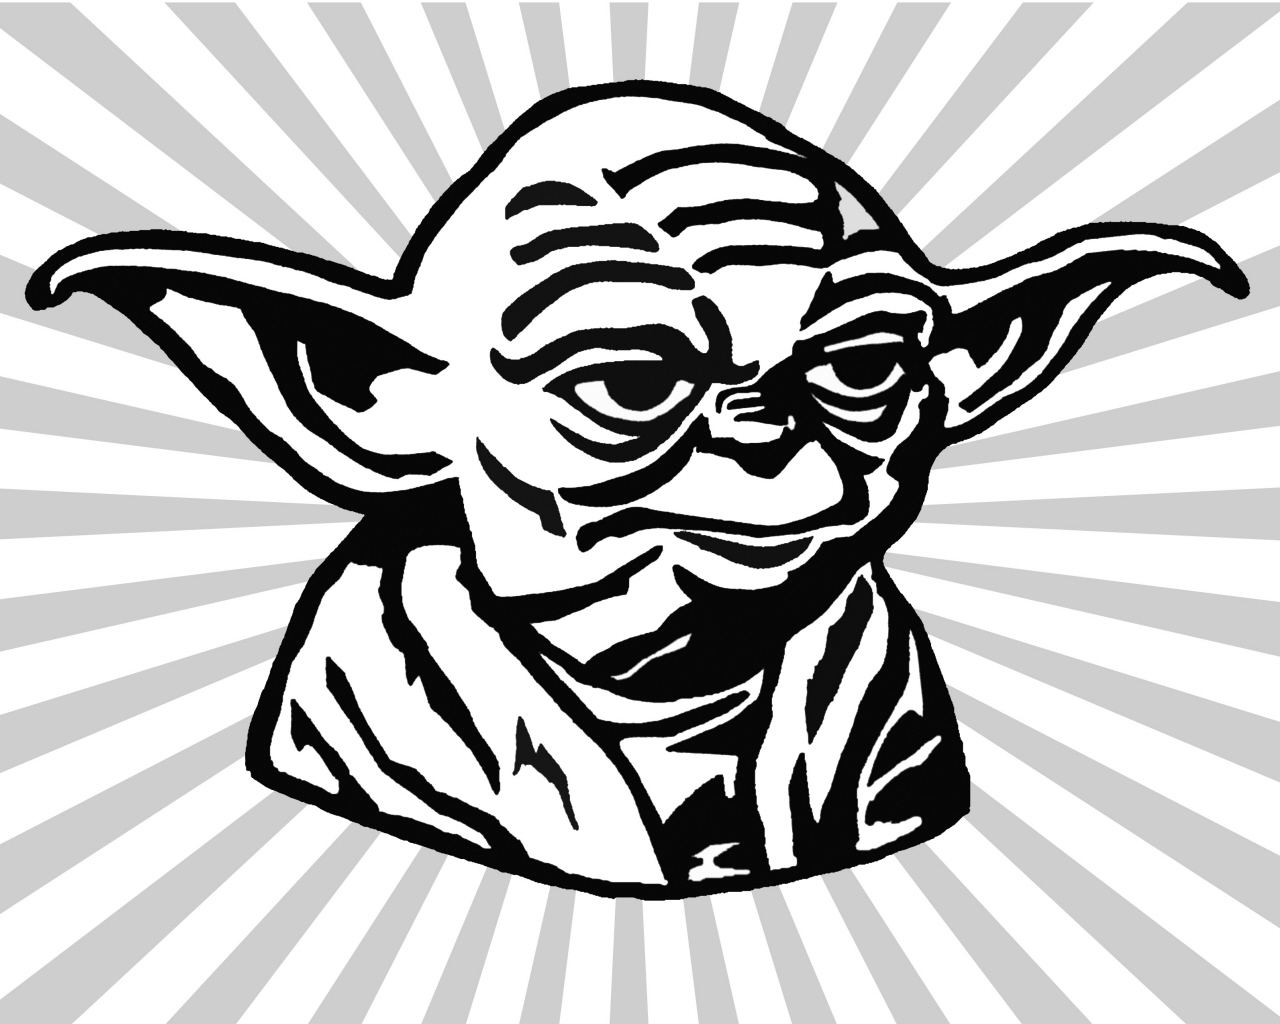 yoda outline star wars clipart free free download on clipartmag yoda outline